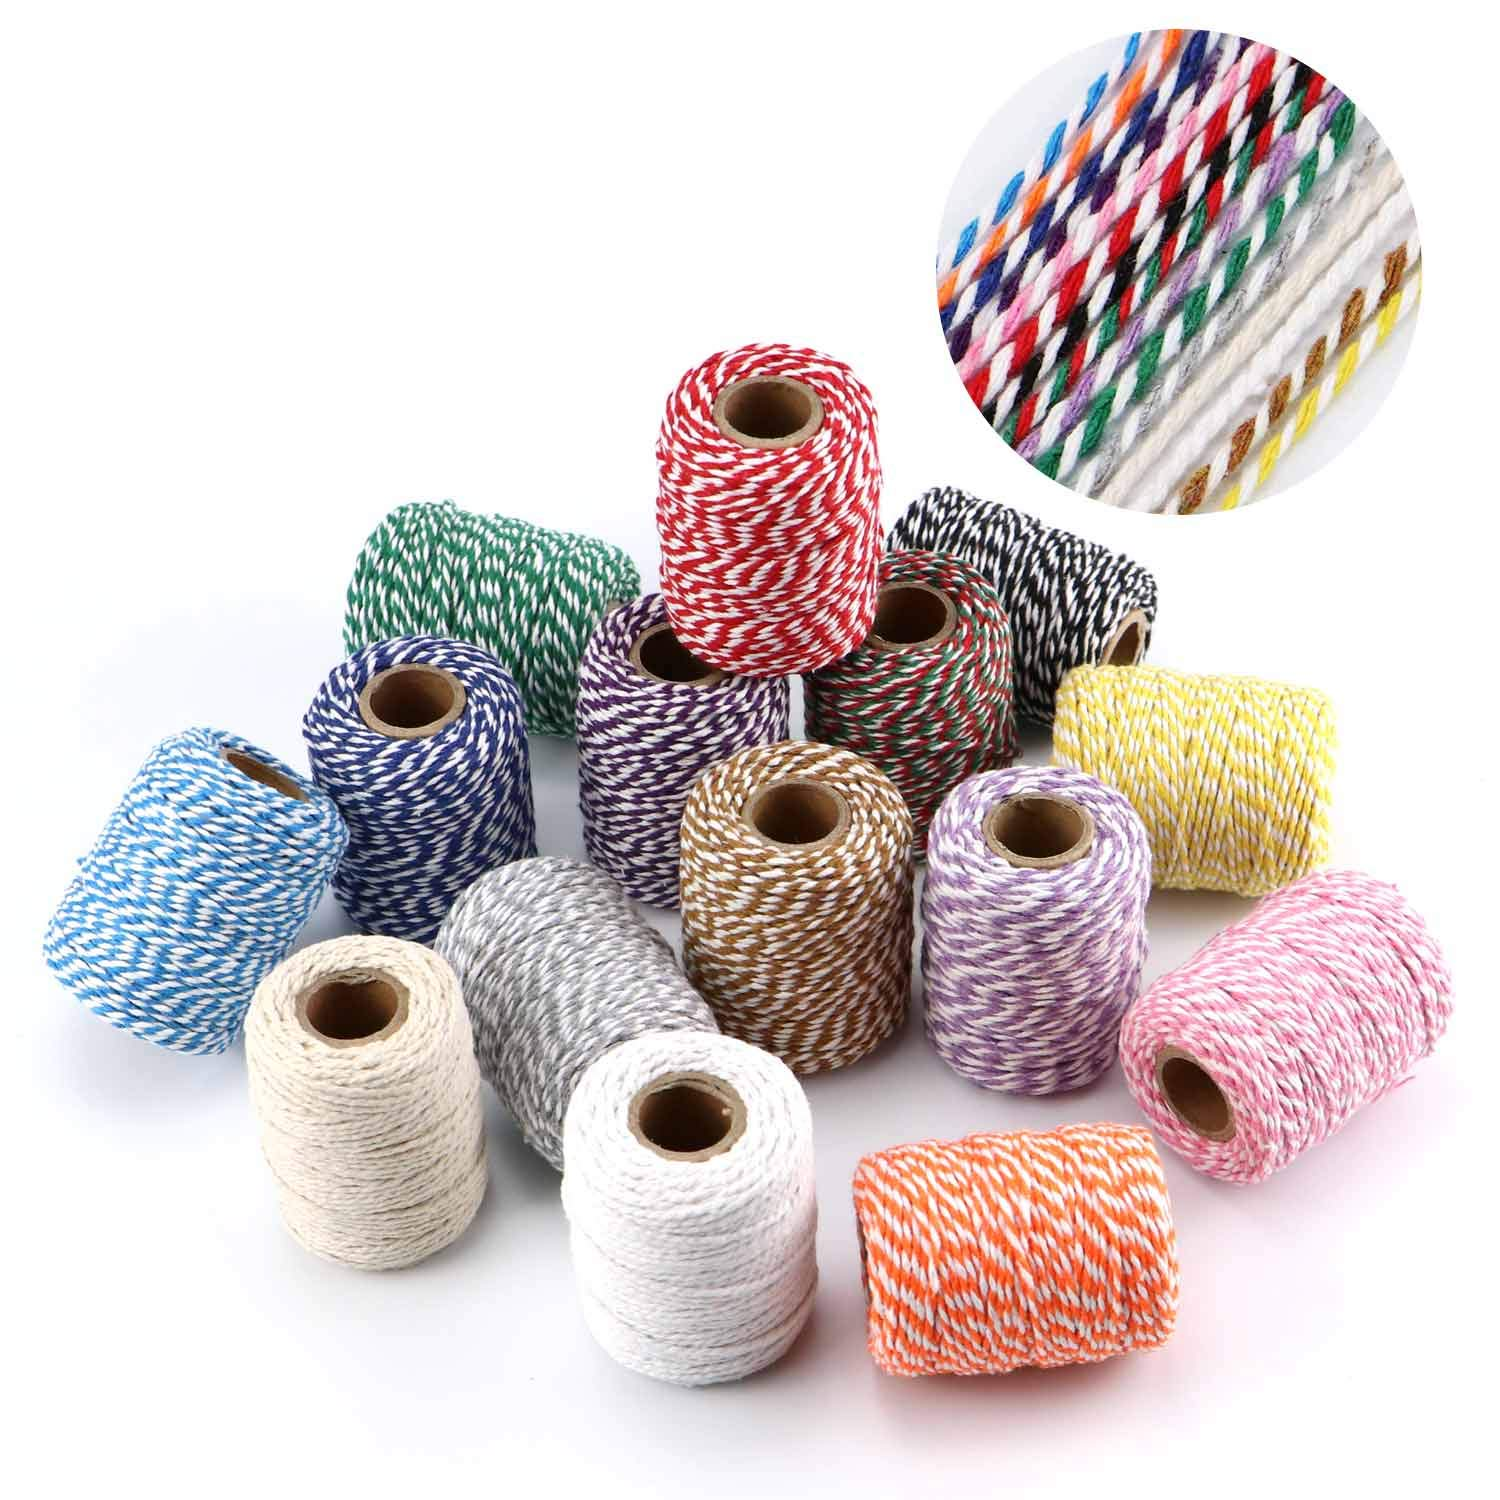 HULISEN Jute Twine Picture Display and Embellishments 15 Roll Natural Jute String 410 Yards 1230 Feet Gift Wrapping Twine DIY Crafts 2mm 3 ply Twine String for Artworks